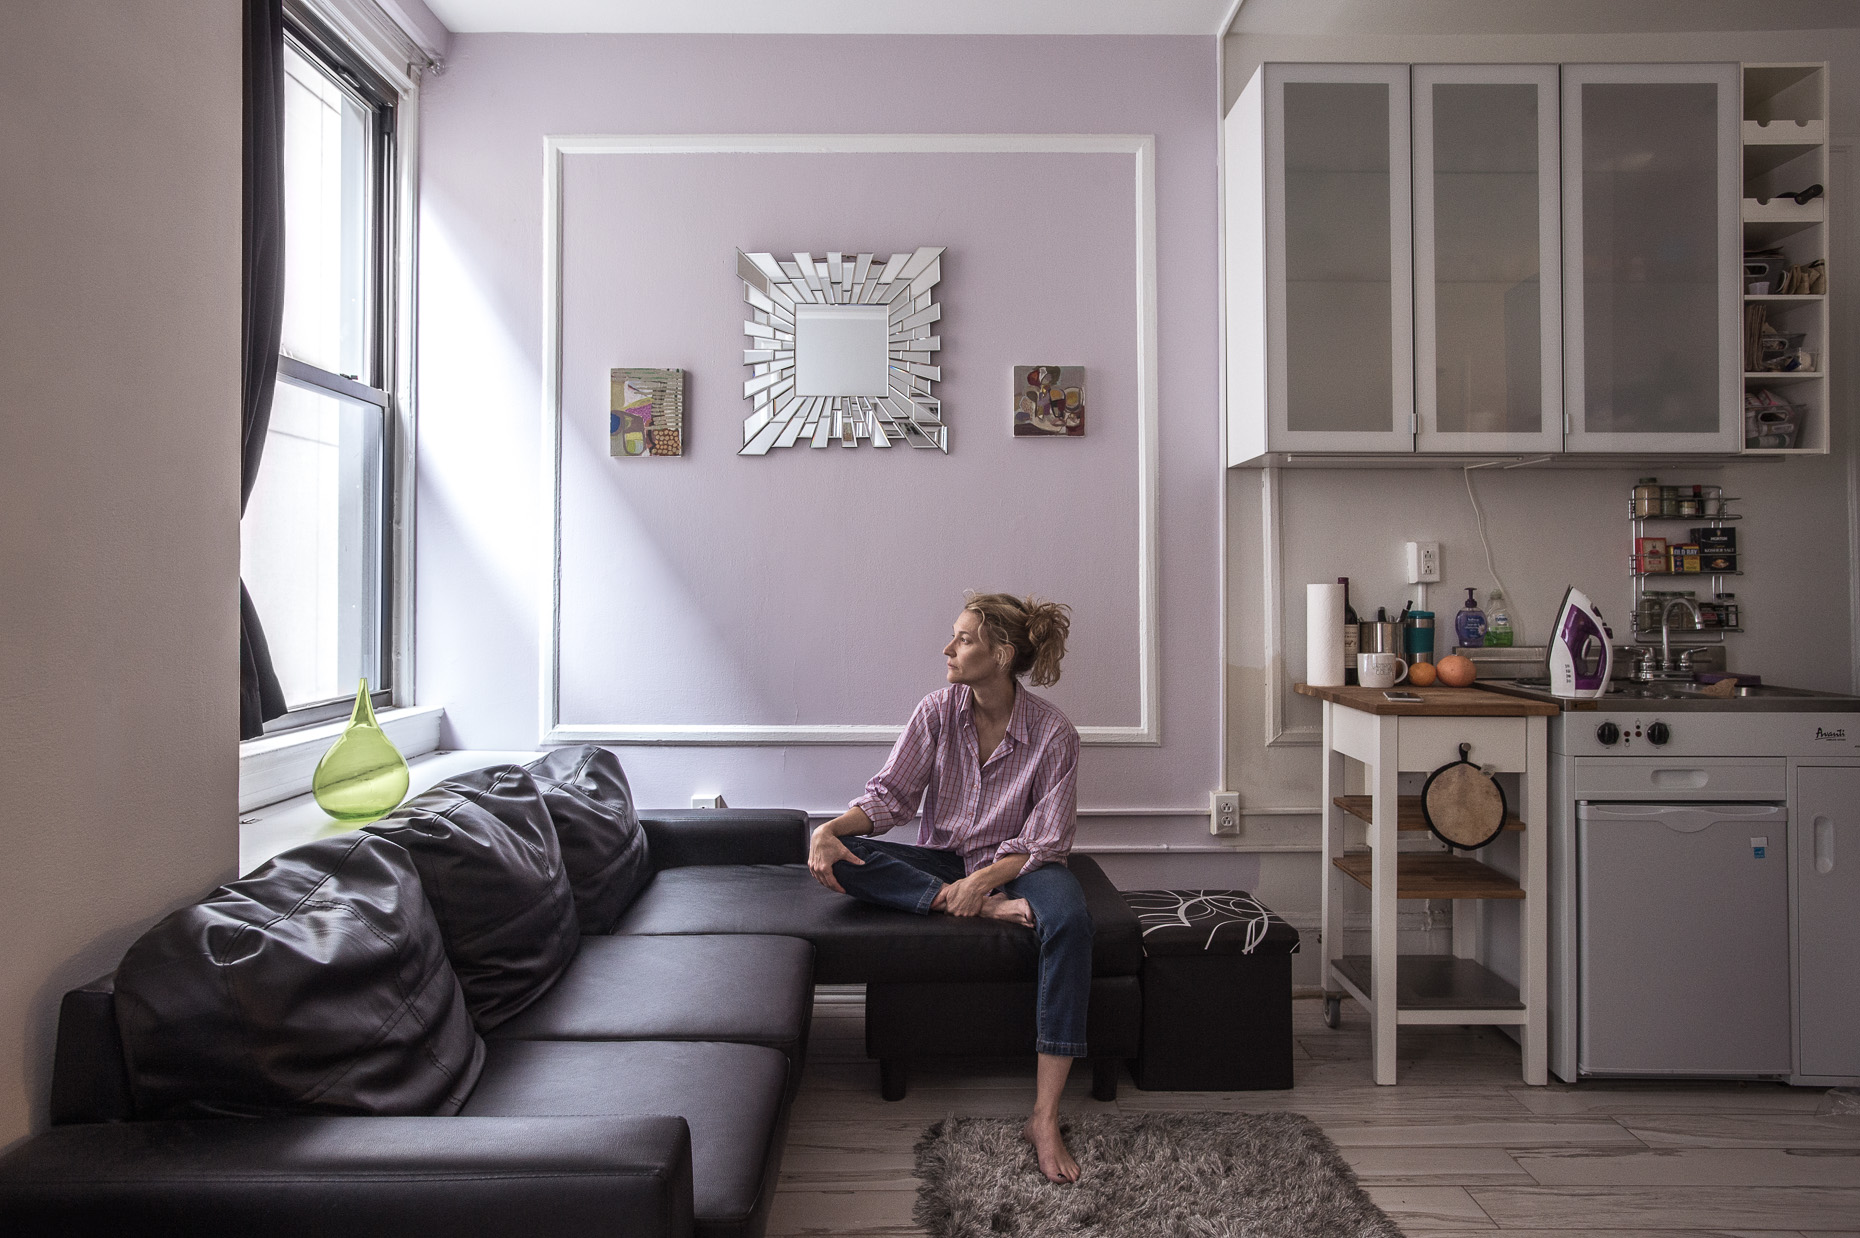 portraits-environmental-woman-apartment-purple